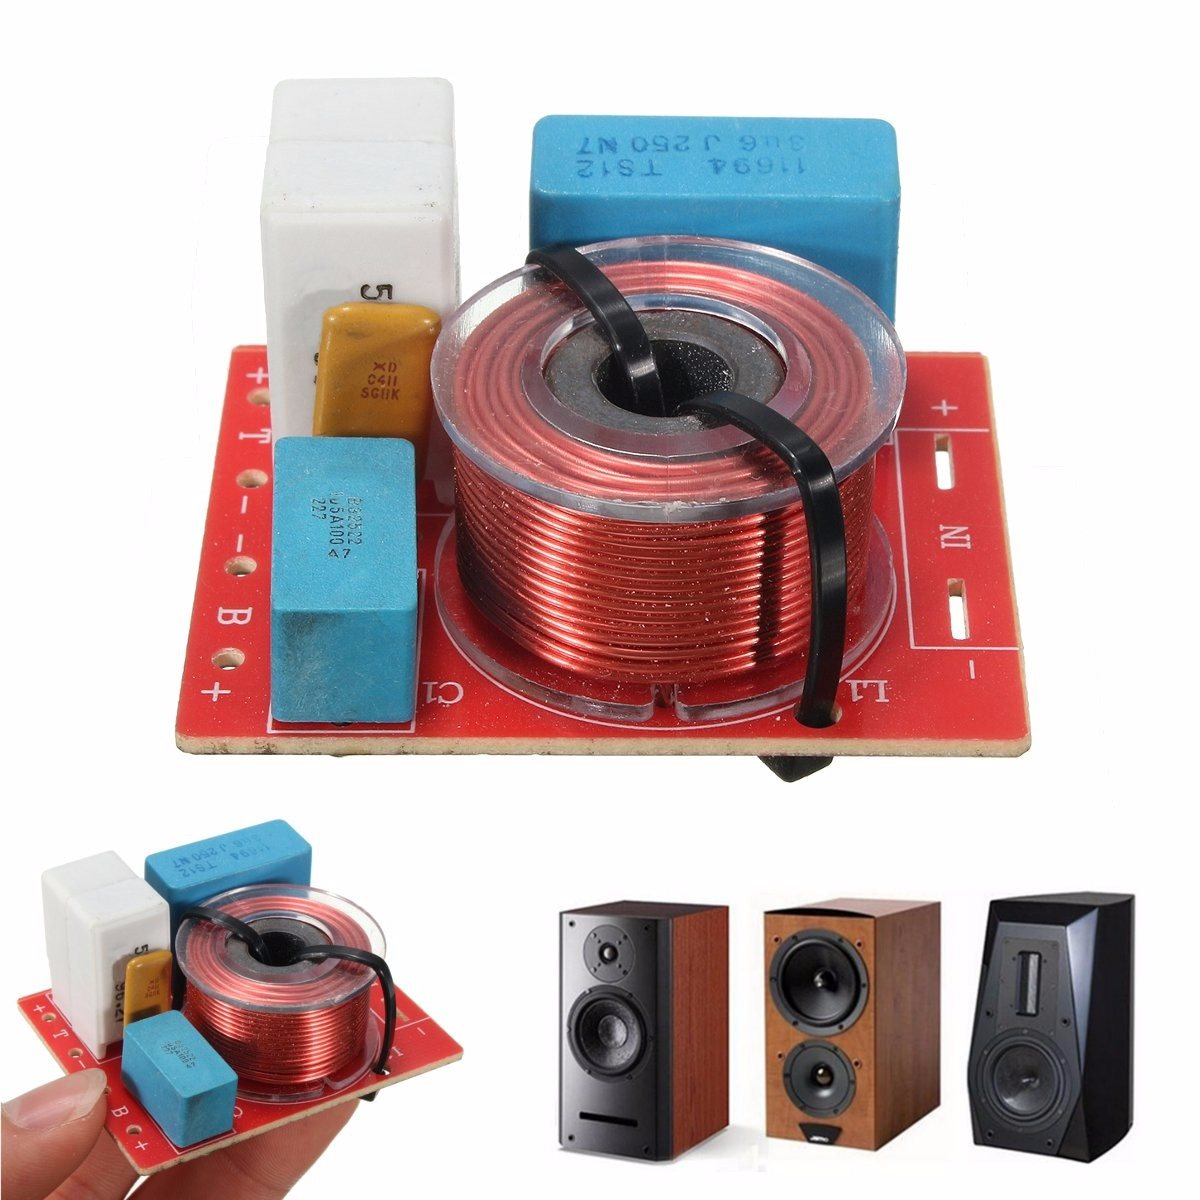 1 pc D-222 boleh laras Treble Bass Frequency Divider 45x56mm 2 Way Speaker Audio Crossover Filters 4-6 Inci 4-8 Ohms 48Hz-20KHz